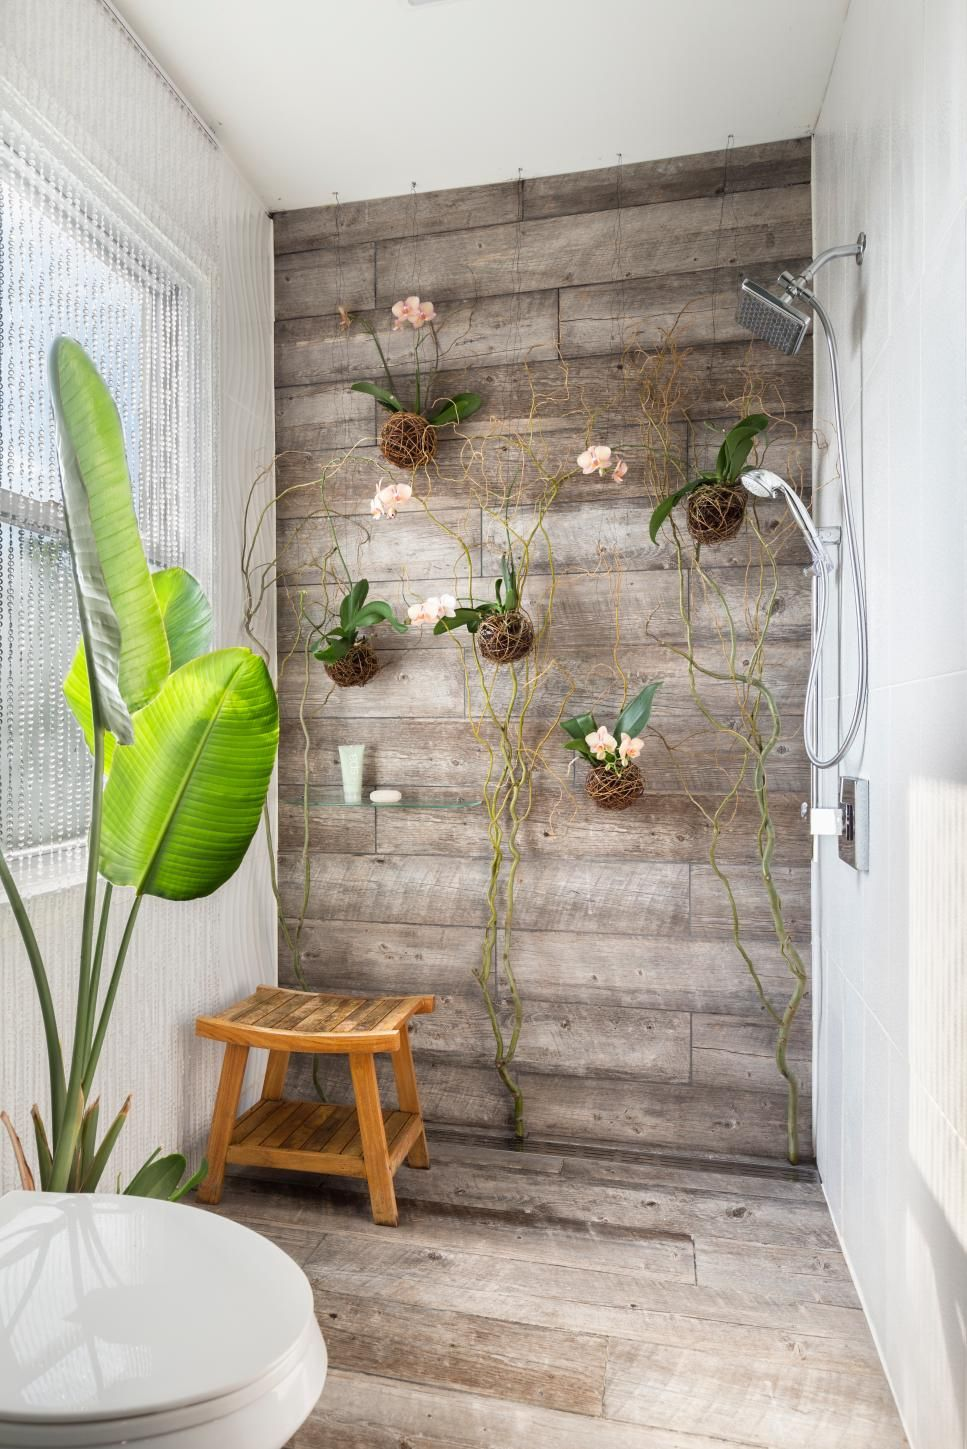 Innovative Living Orchids Wall Wood Plank Tile Shower Wood Plank Tile Shower Living Orchids Wall Nest Pinterest Wood Tile Shower Walls Wood Tile Shower Photos houzz-02 Wood Tile Shower